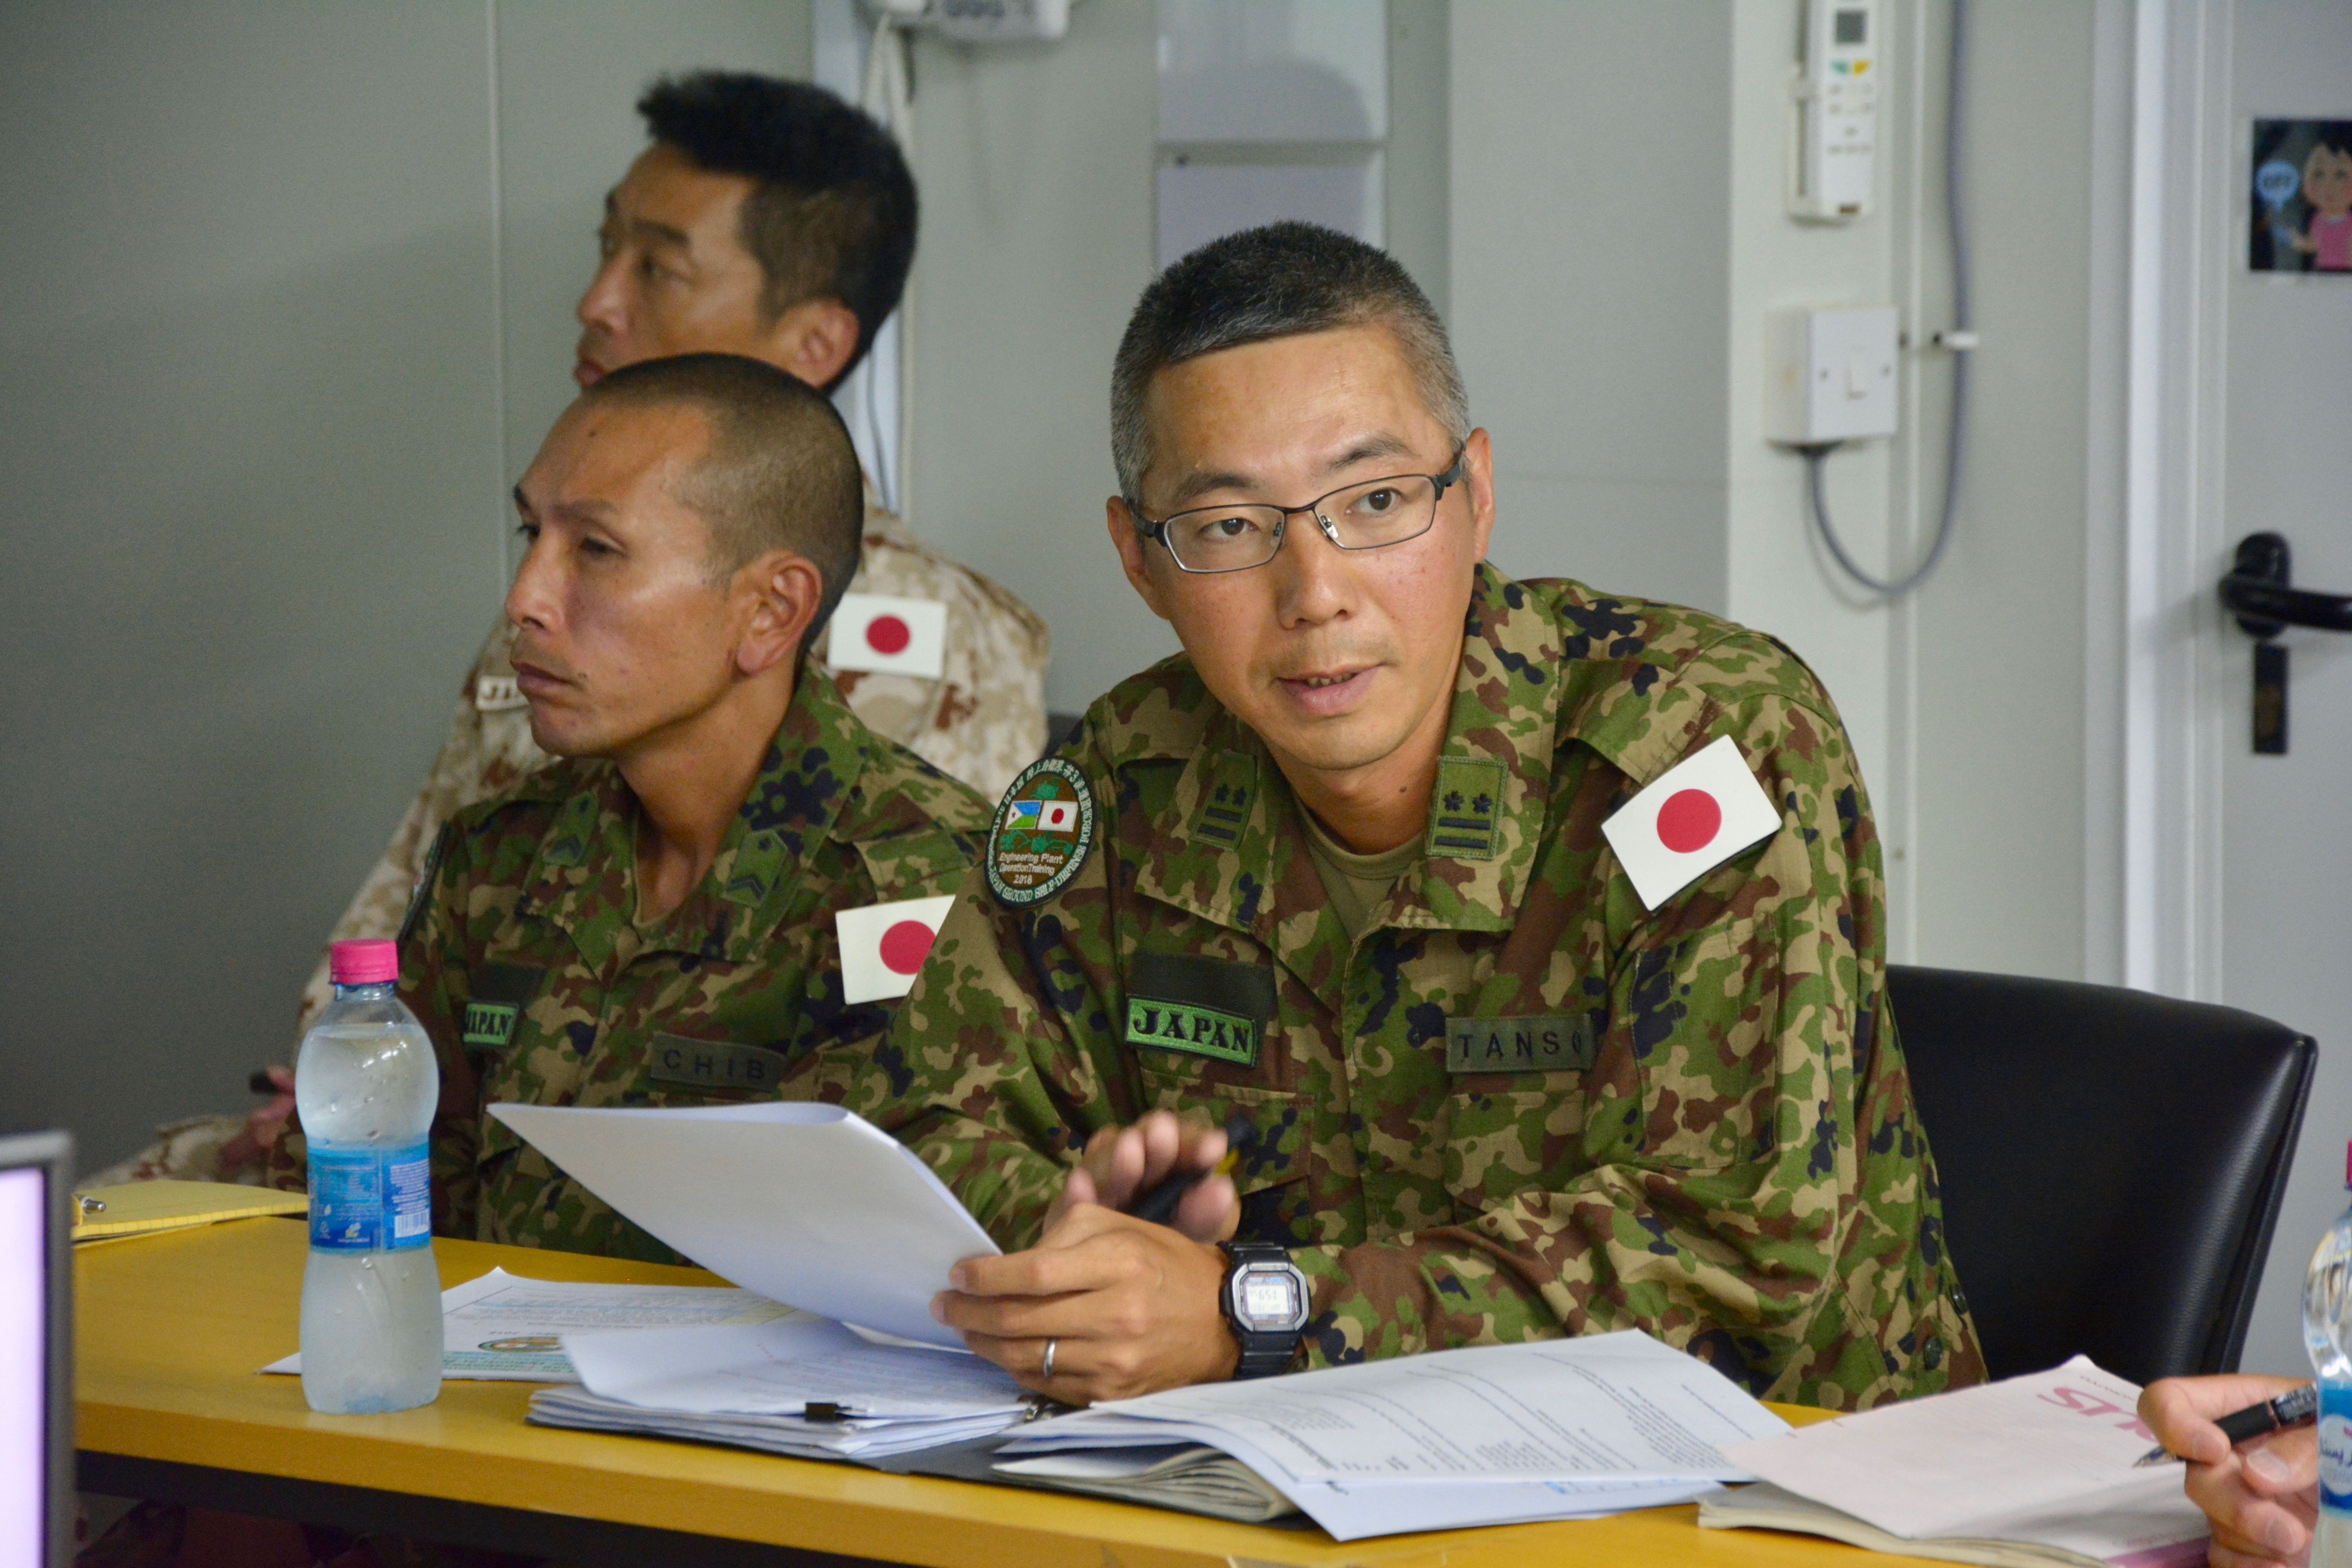 Japan Ground Self-Defense Force Col. Masatoshi Tanso briefs U.S. Army Lt. Col. Kenneth Kim, commander of the 403rd Civil Affairs Battalion, Mattydale, New York, during a key leadership engagement at Japan Self-Defense Force Base, Djibouti, Nov. 21, 2018. Japanese and U.S. leadership met to discuss ways to build relationships across the Combined Joint Operations Area. (U.S. Army Photo by Capt. Olivia Cobiskey)